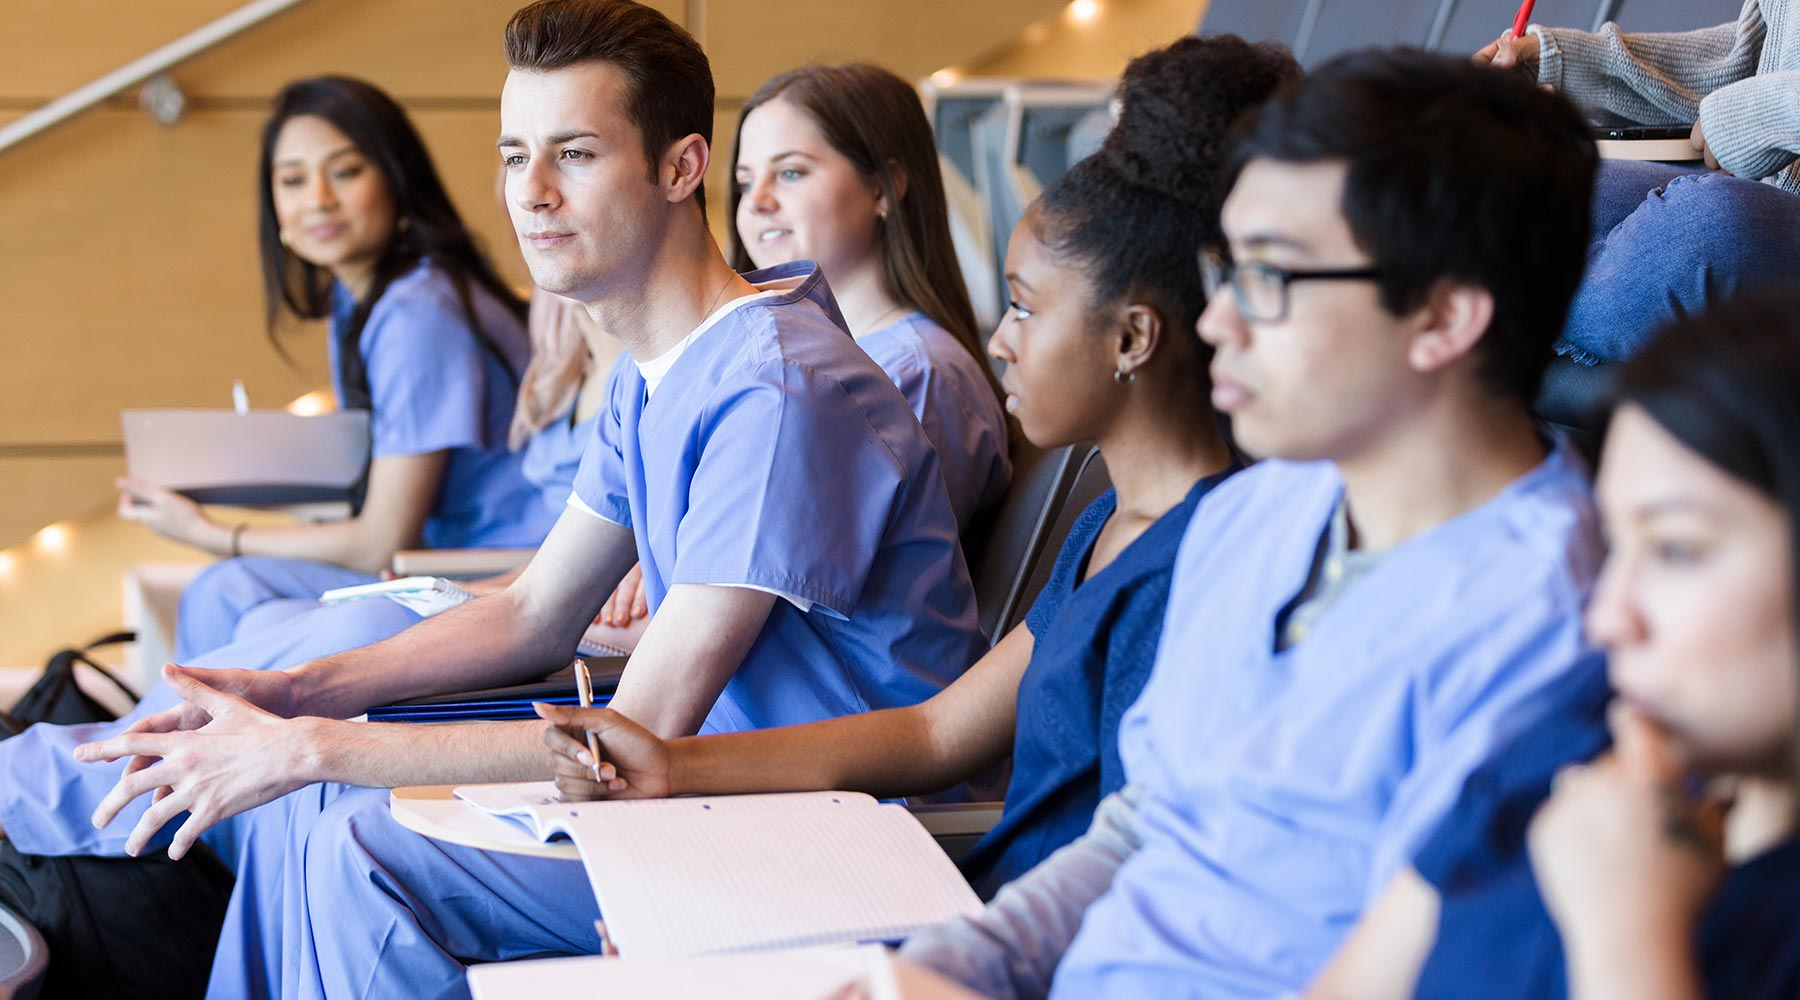 Why Nursing Students Need their Own Professional Liability Policy